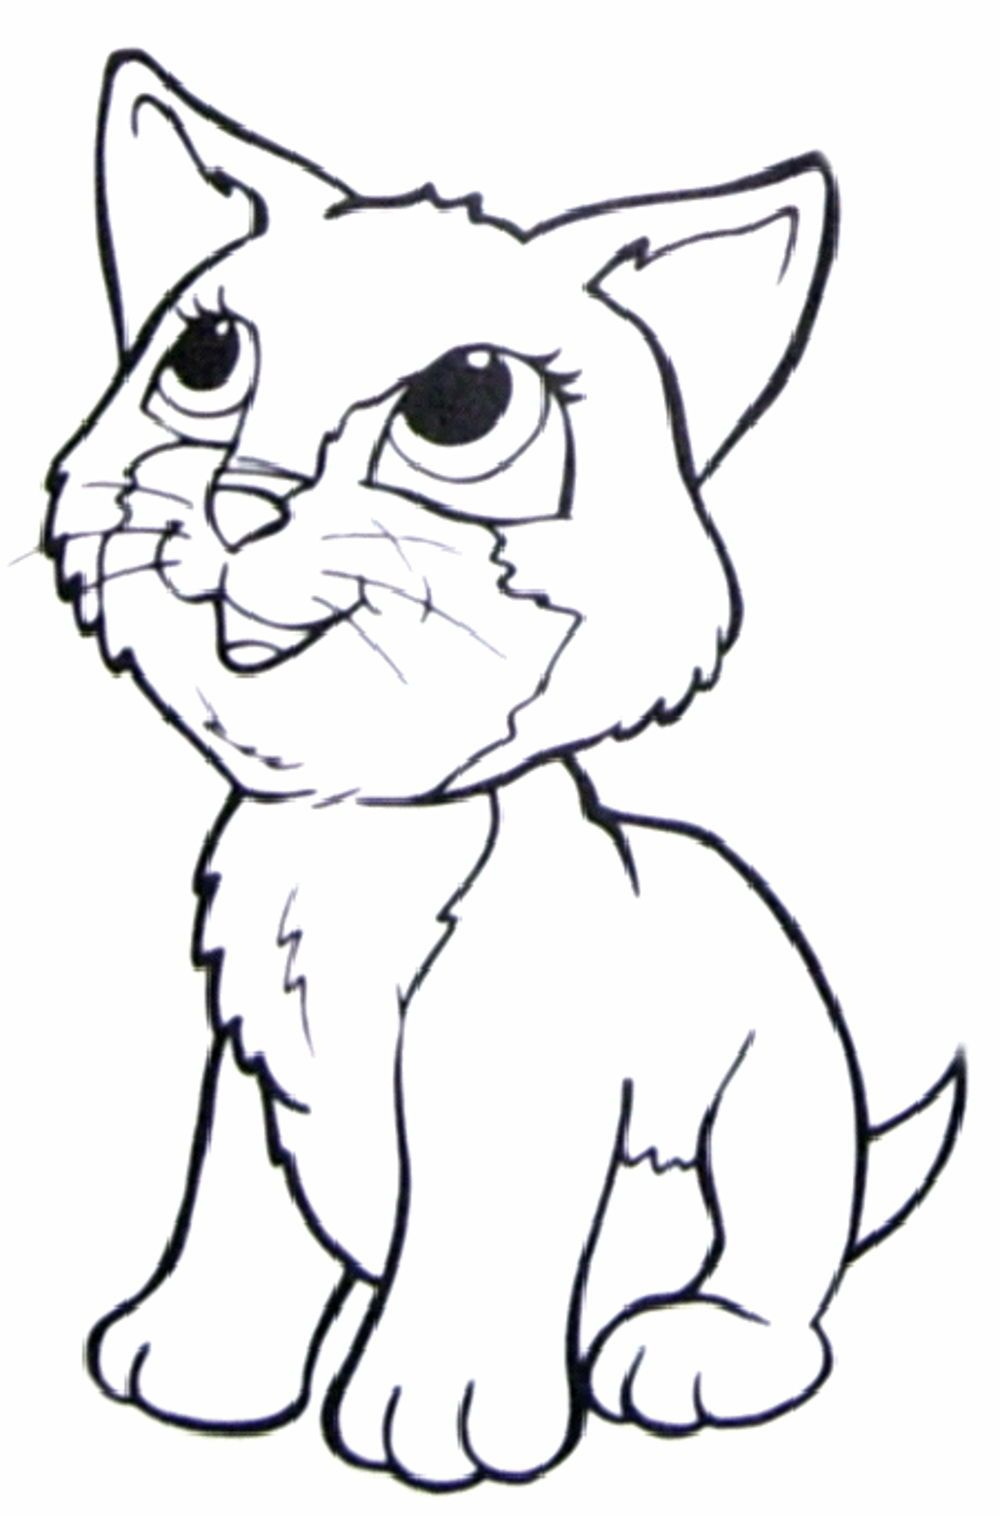 cheshire cat coloring page cheshire cat coloring pages cheshire